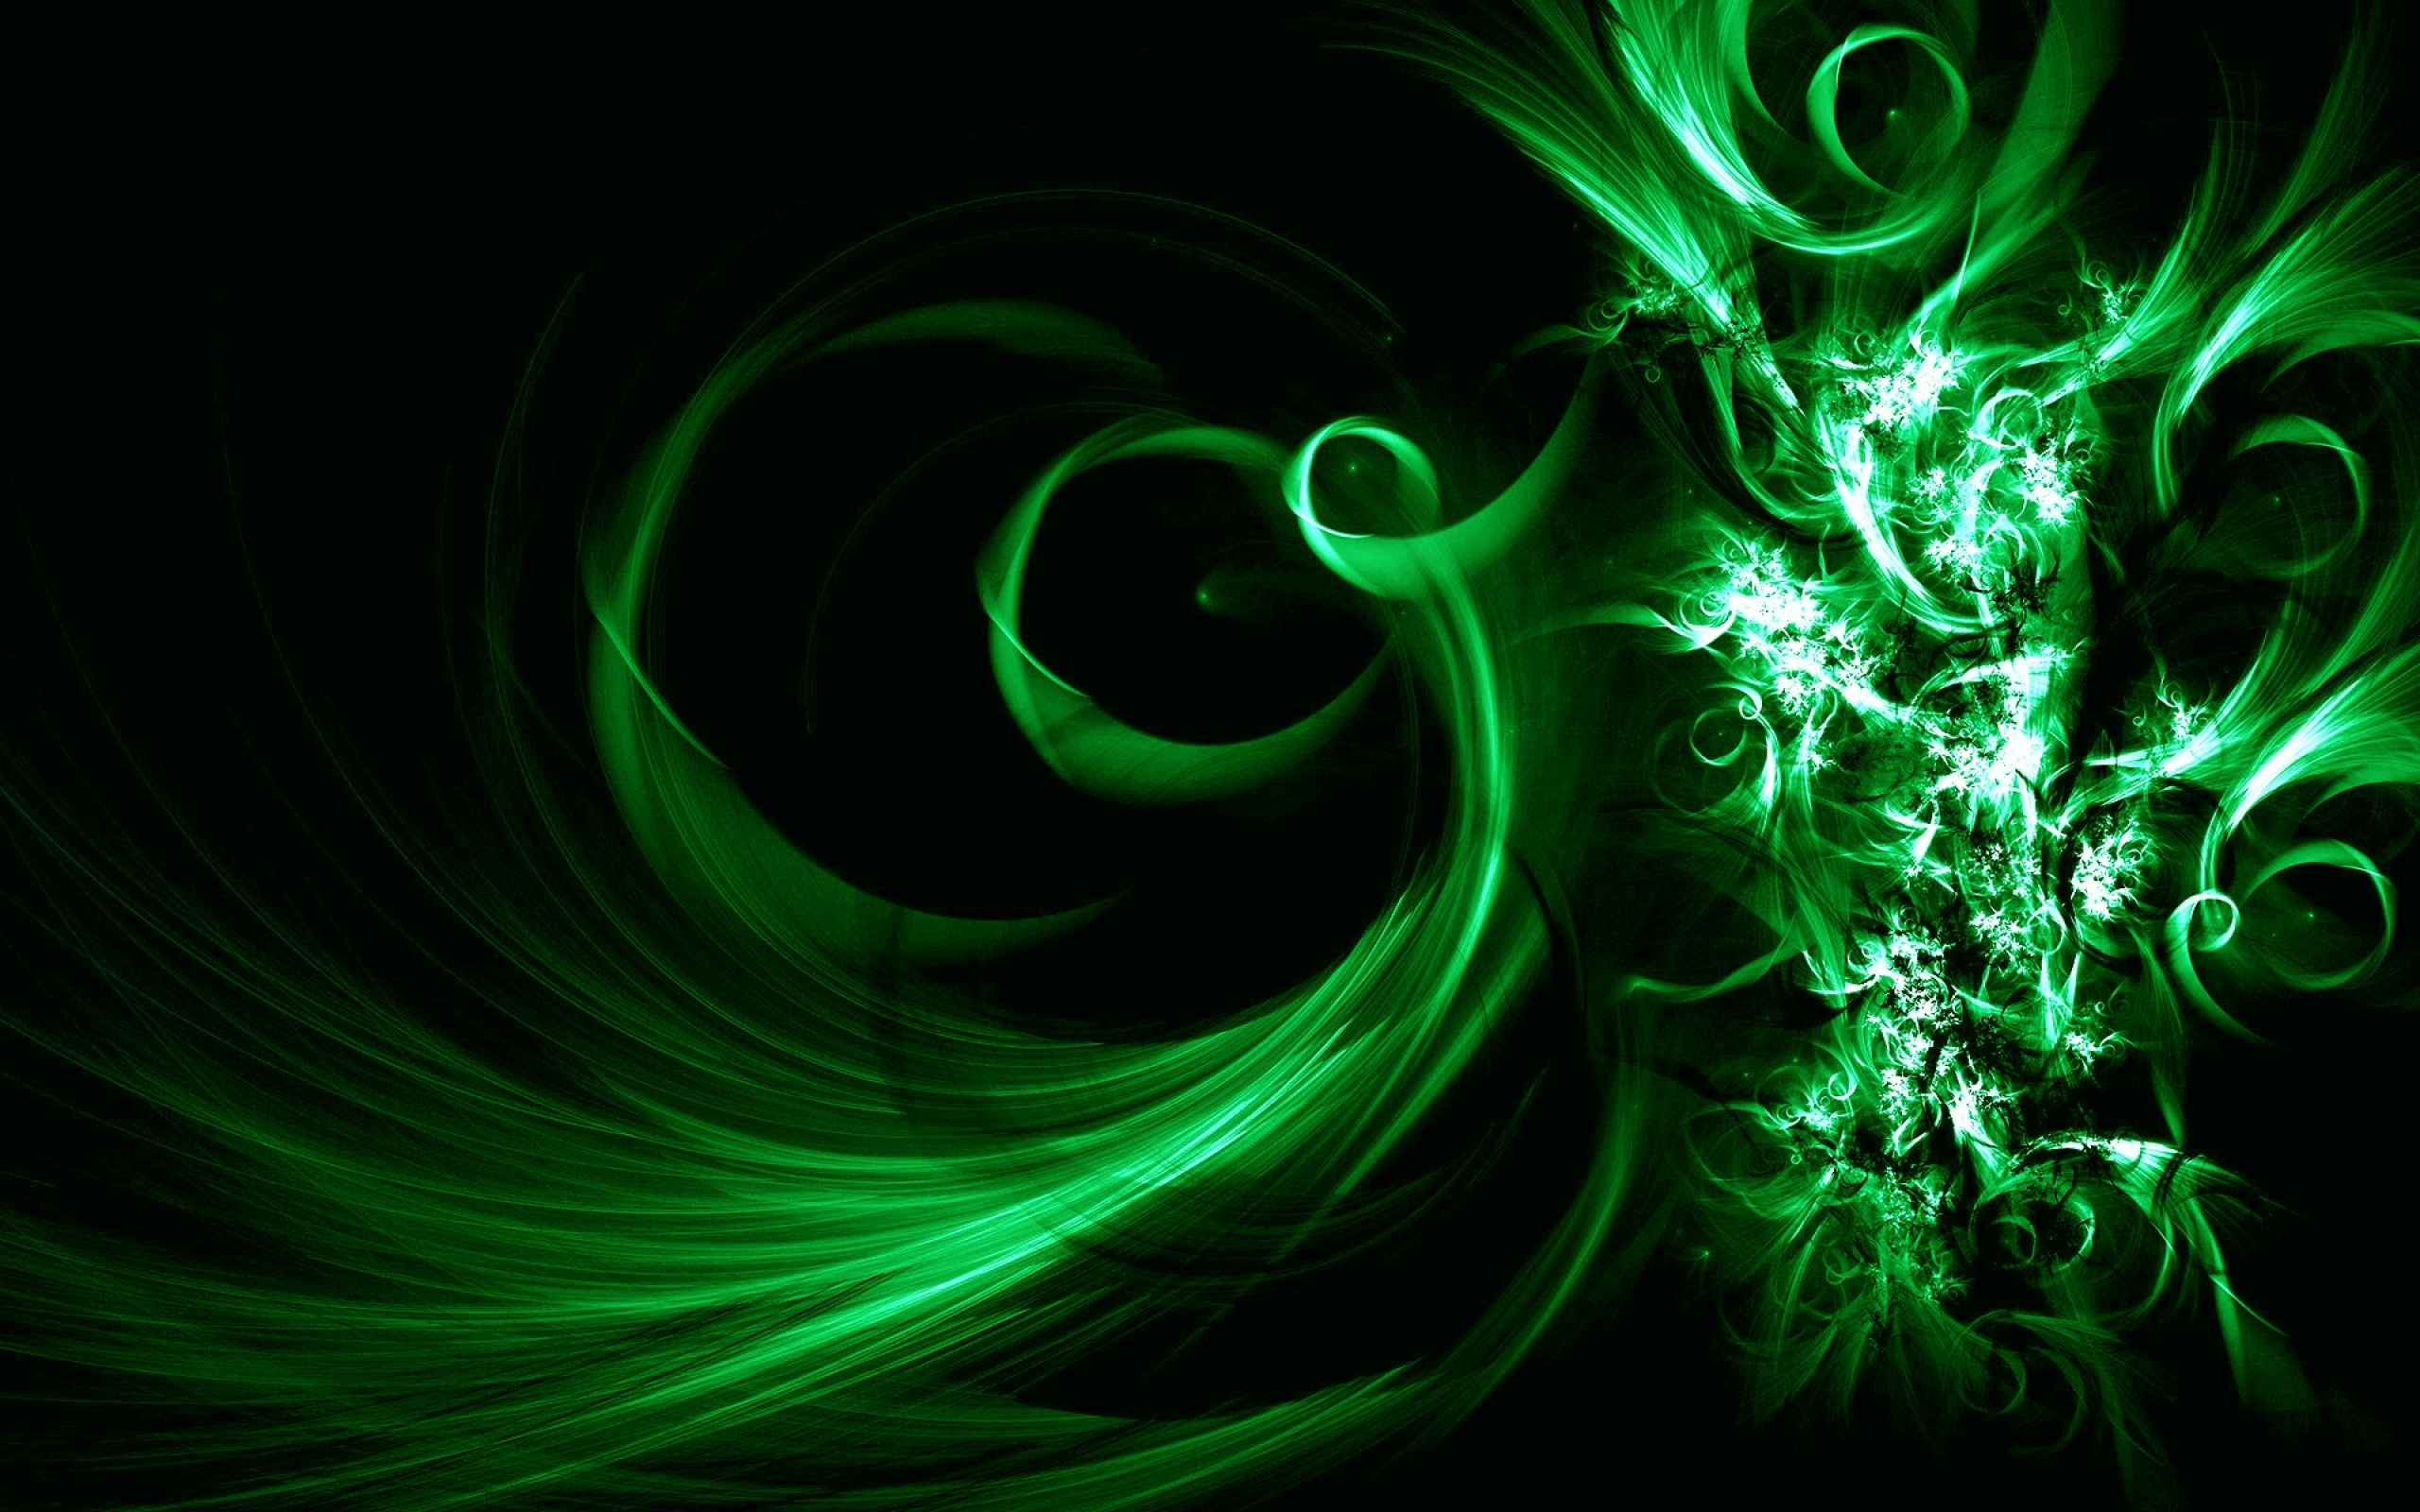 Free Green Free Dark Abstract Wallpaper Downloads Wallpaper